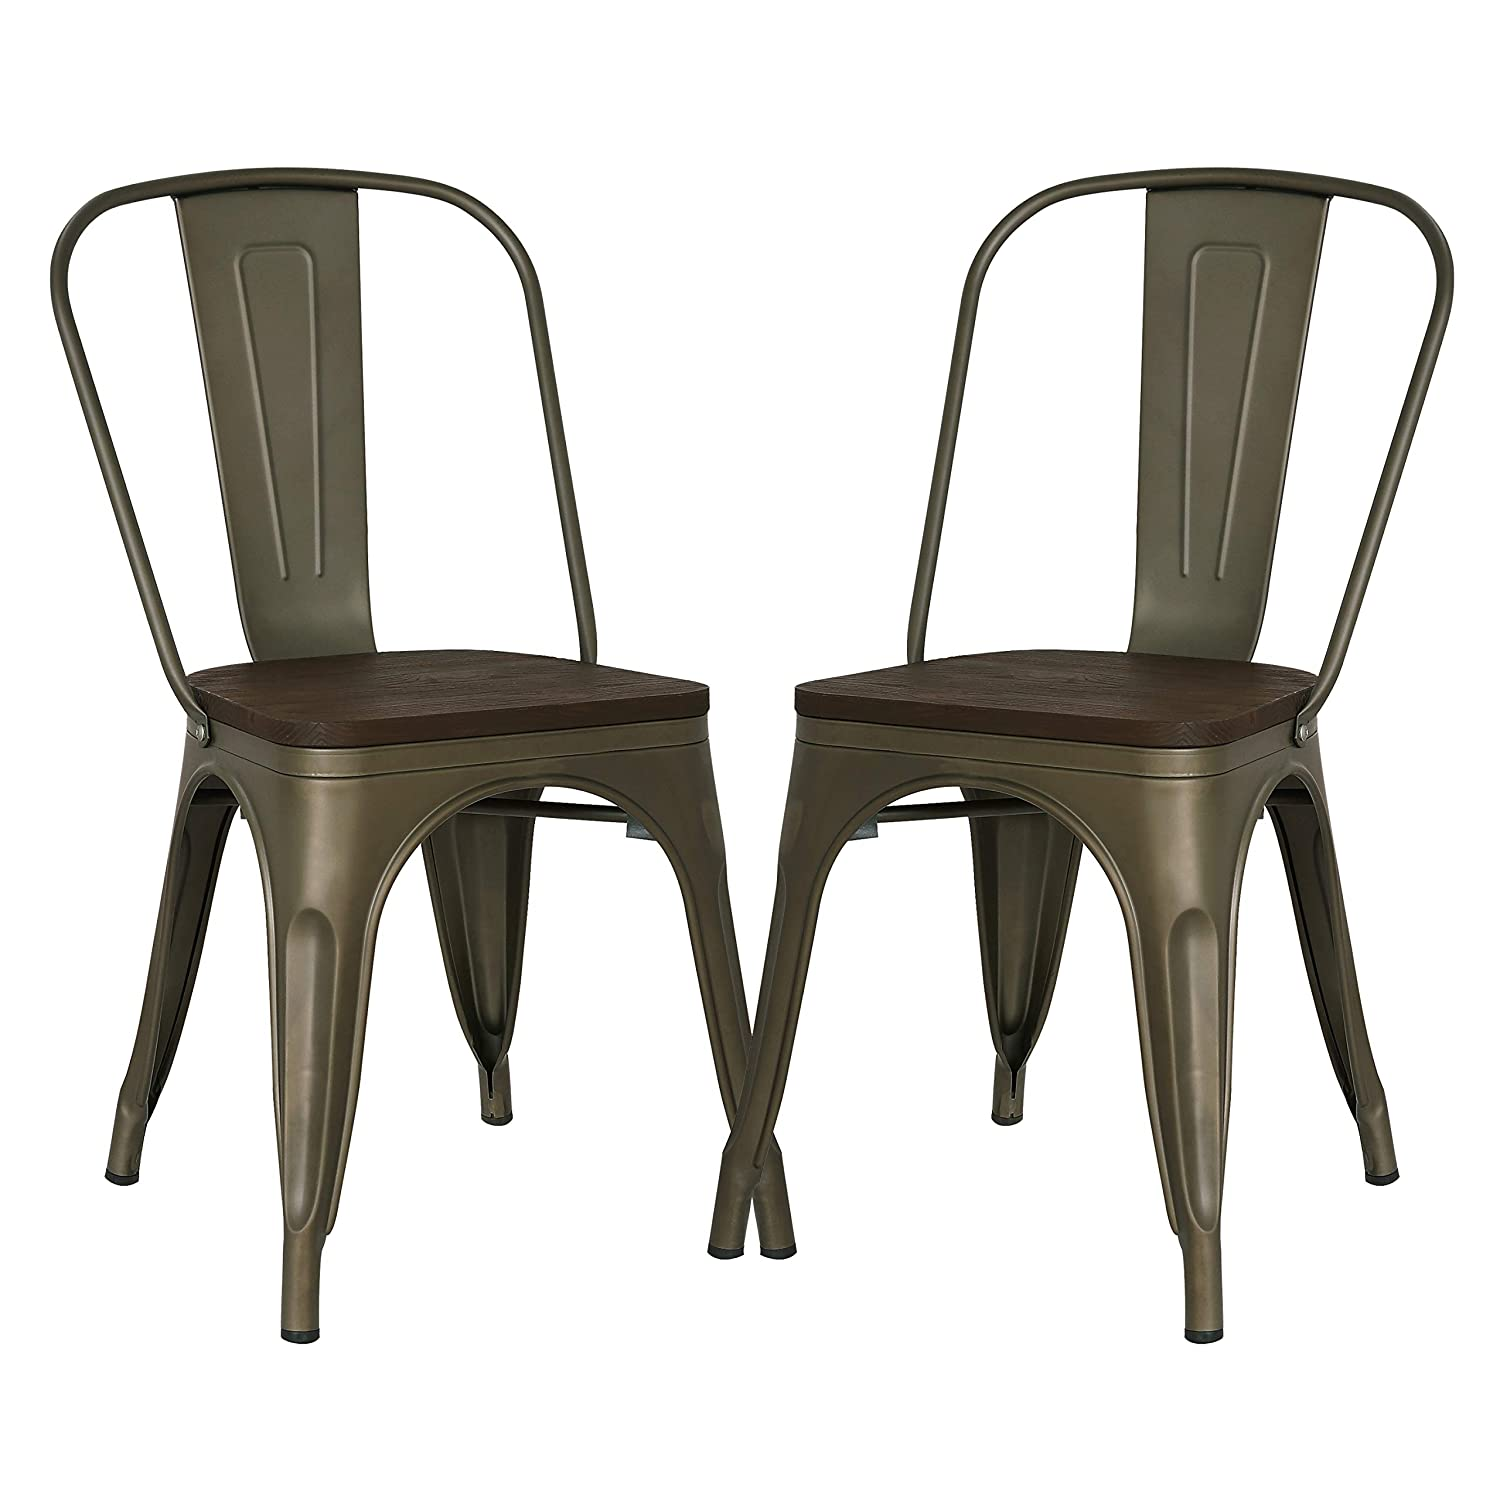 Poly and Bark Trattoria Kitchen and Dining Metal Side Chair with Elm Wood Seat in Bronze Set of 2